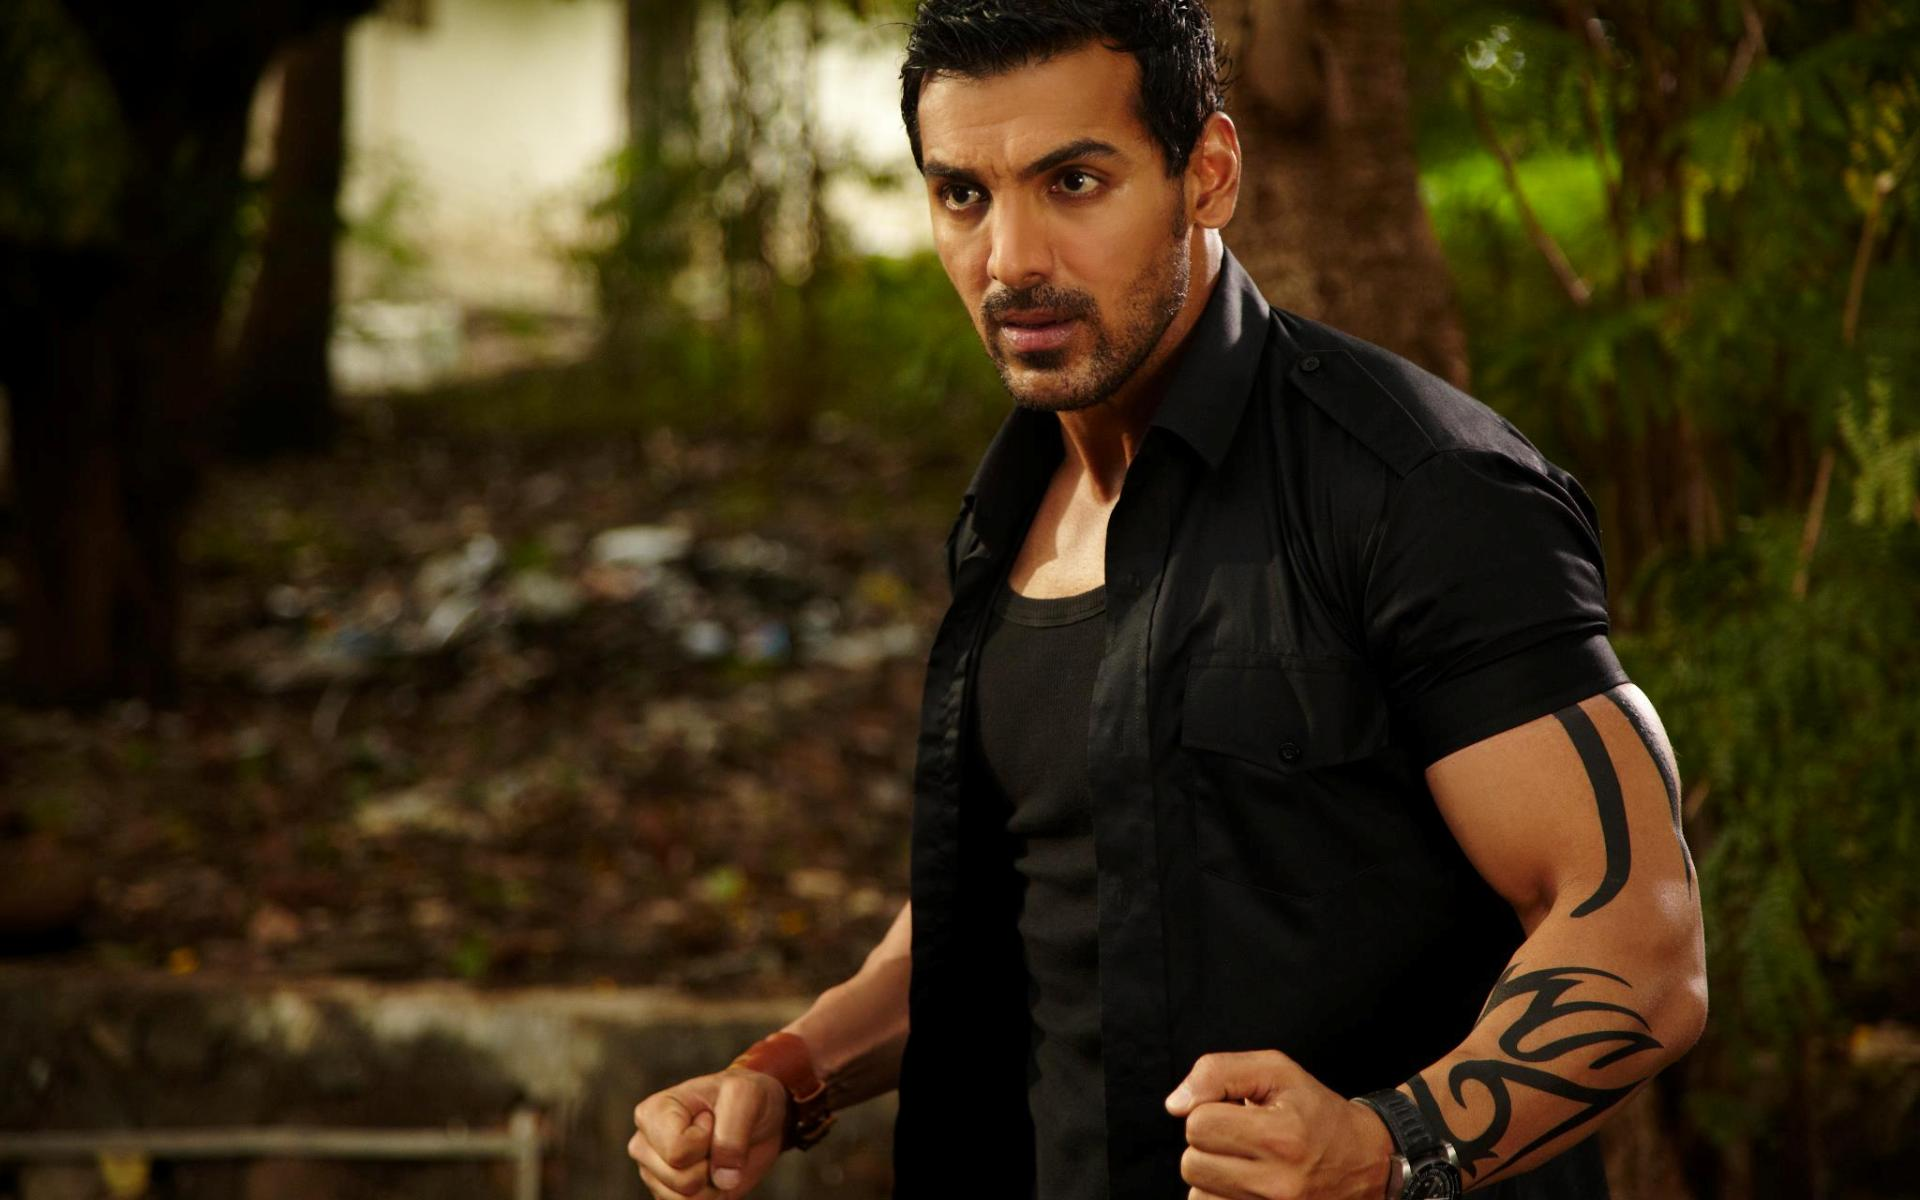 Wallpaper download john abraham - John Abraham Hd Wallpaper